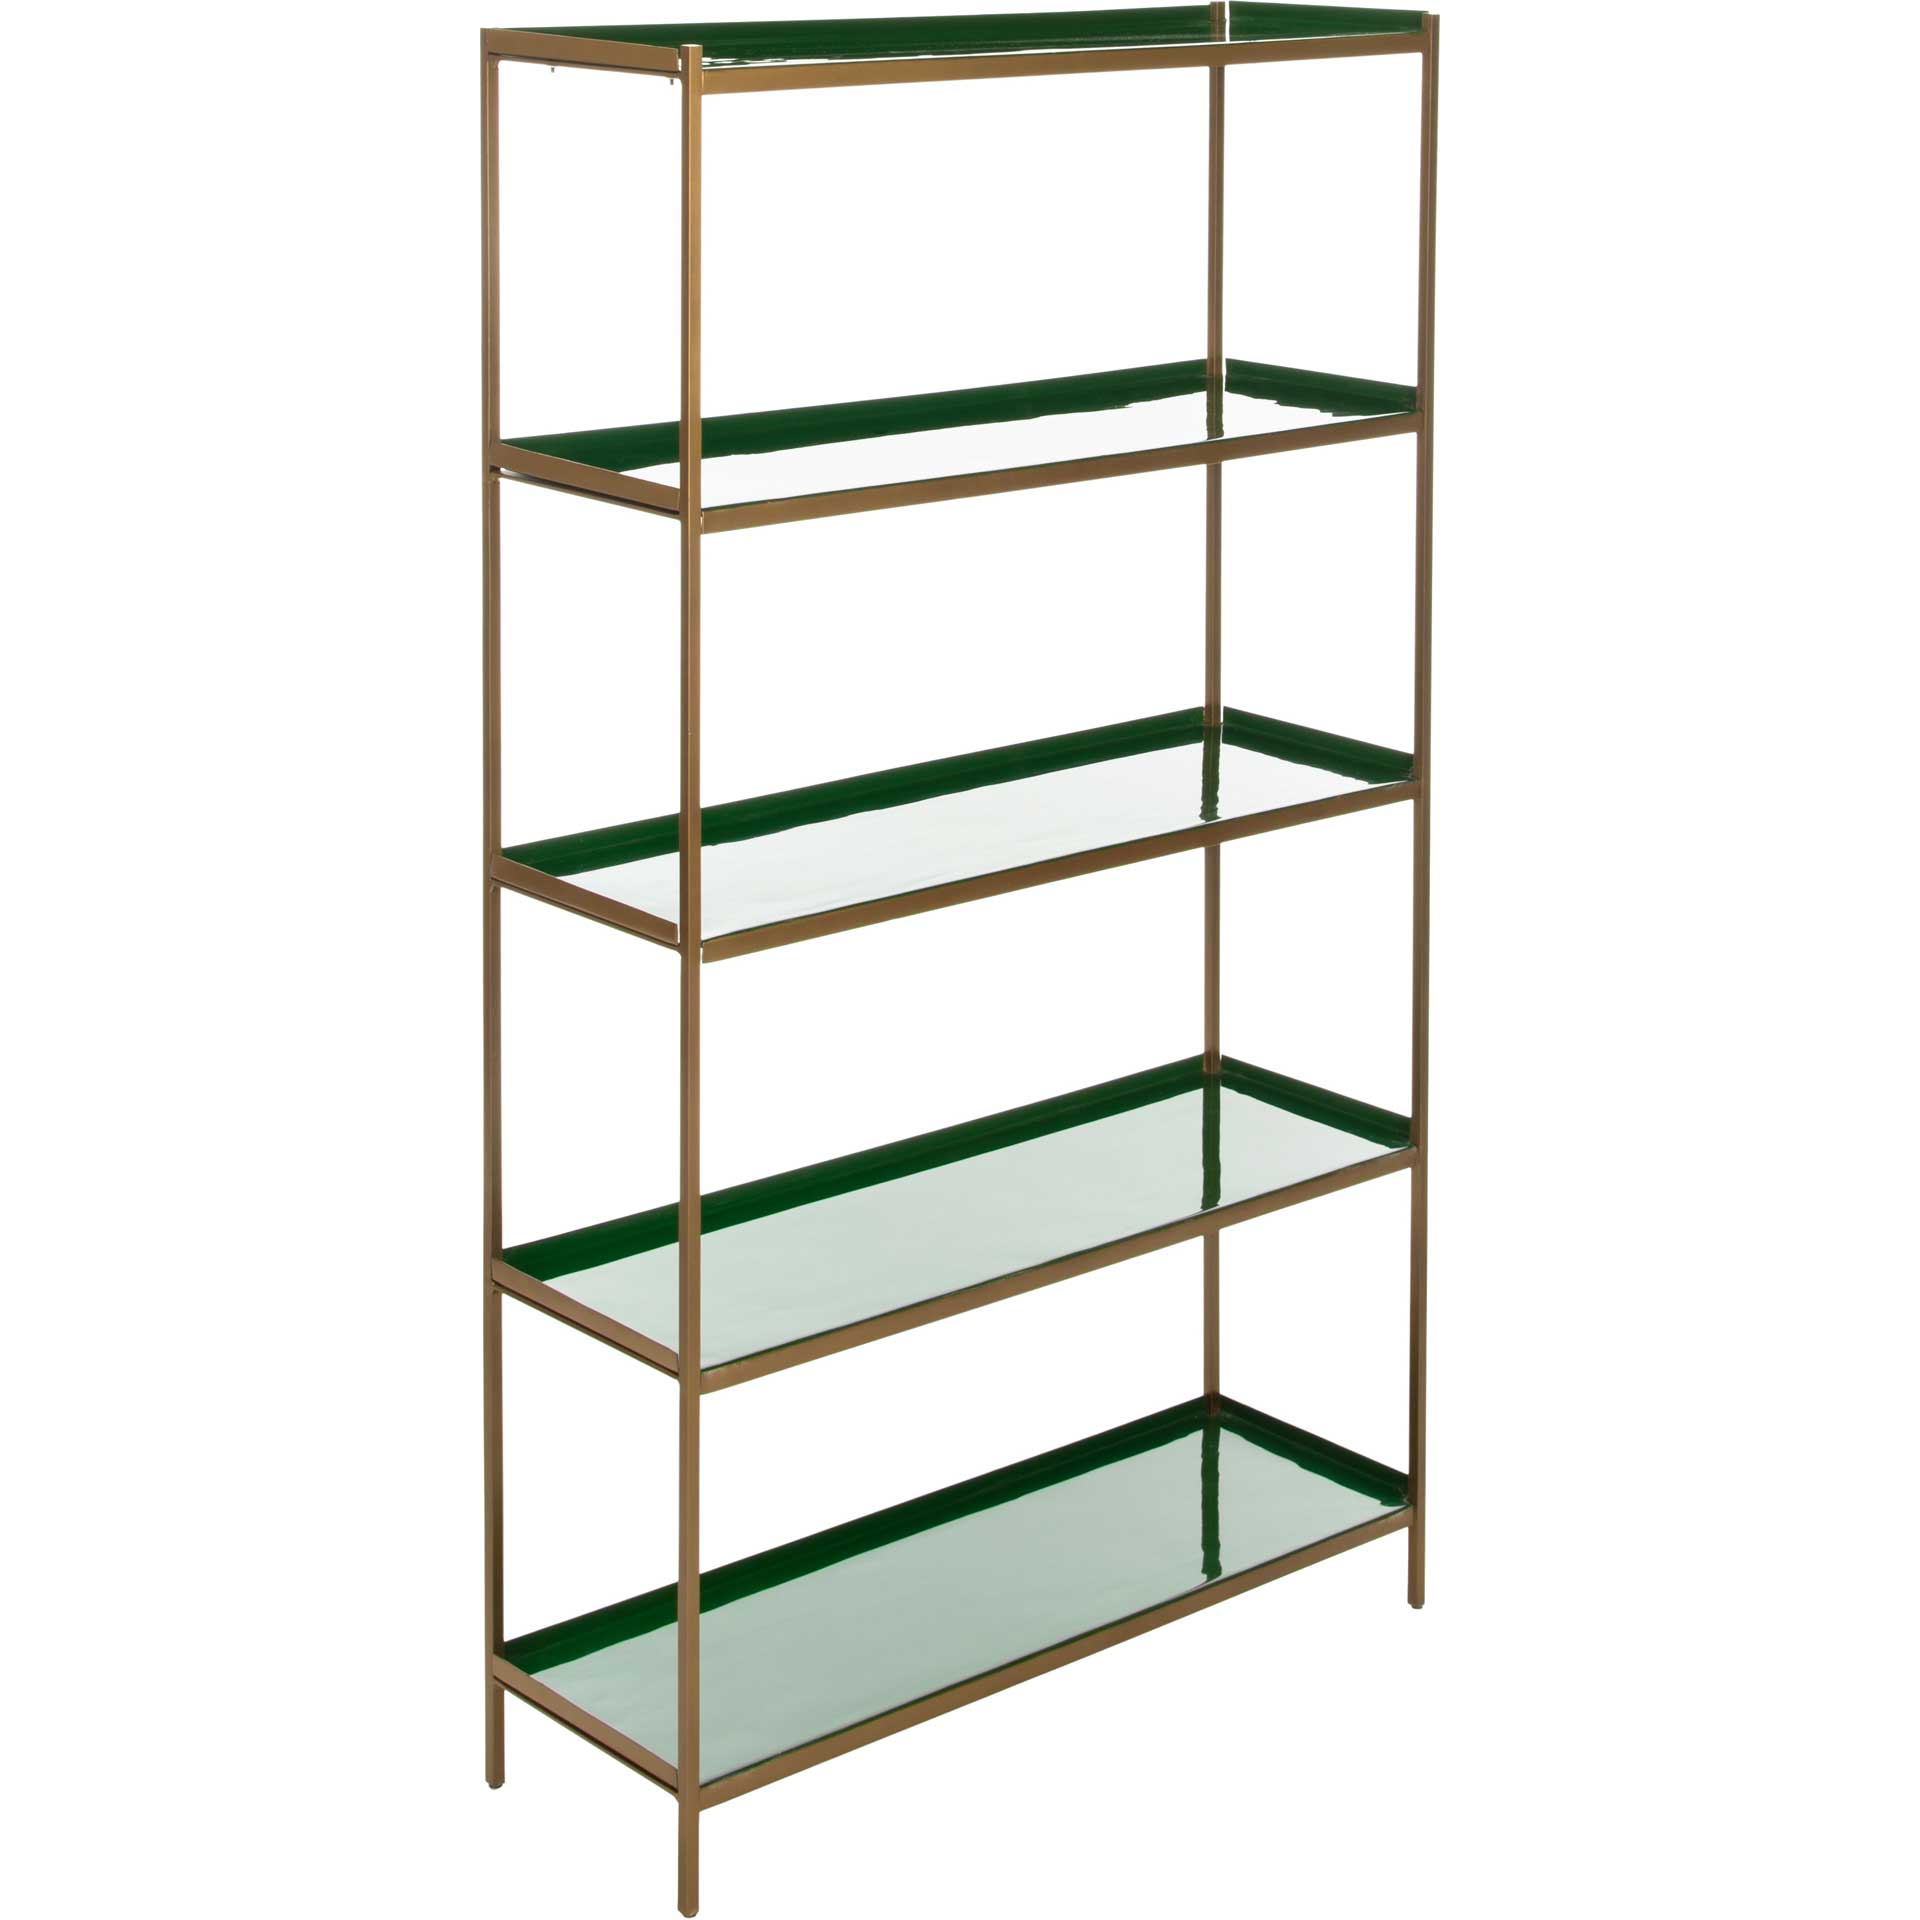 Judson 5 Tier Etagere Green/Brass